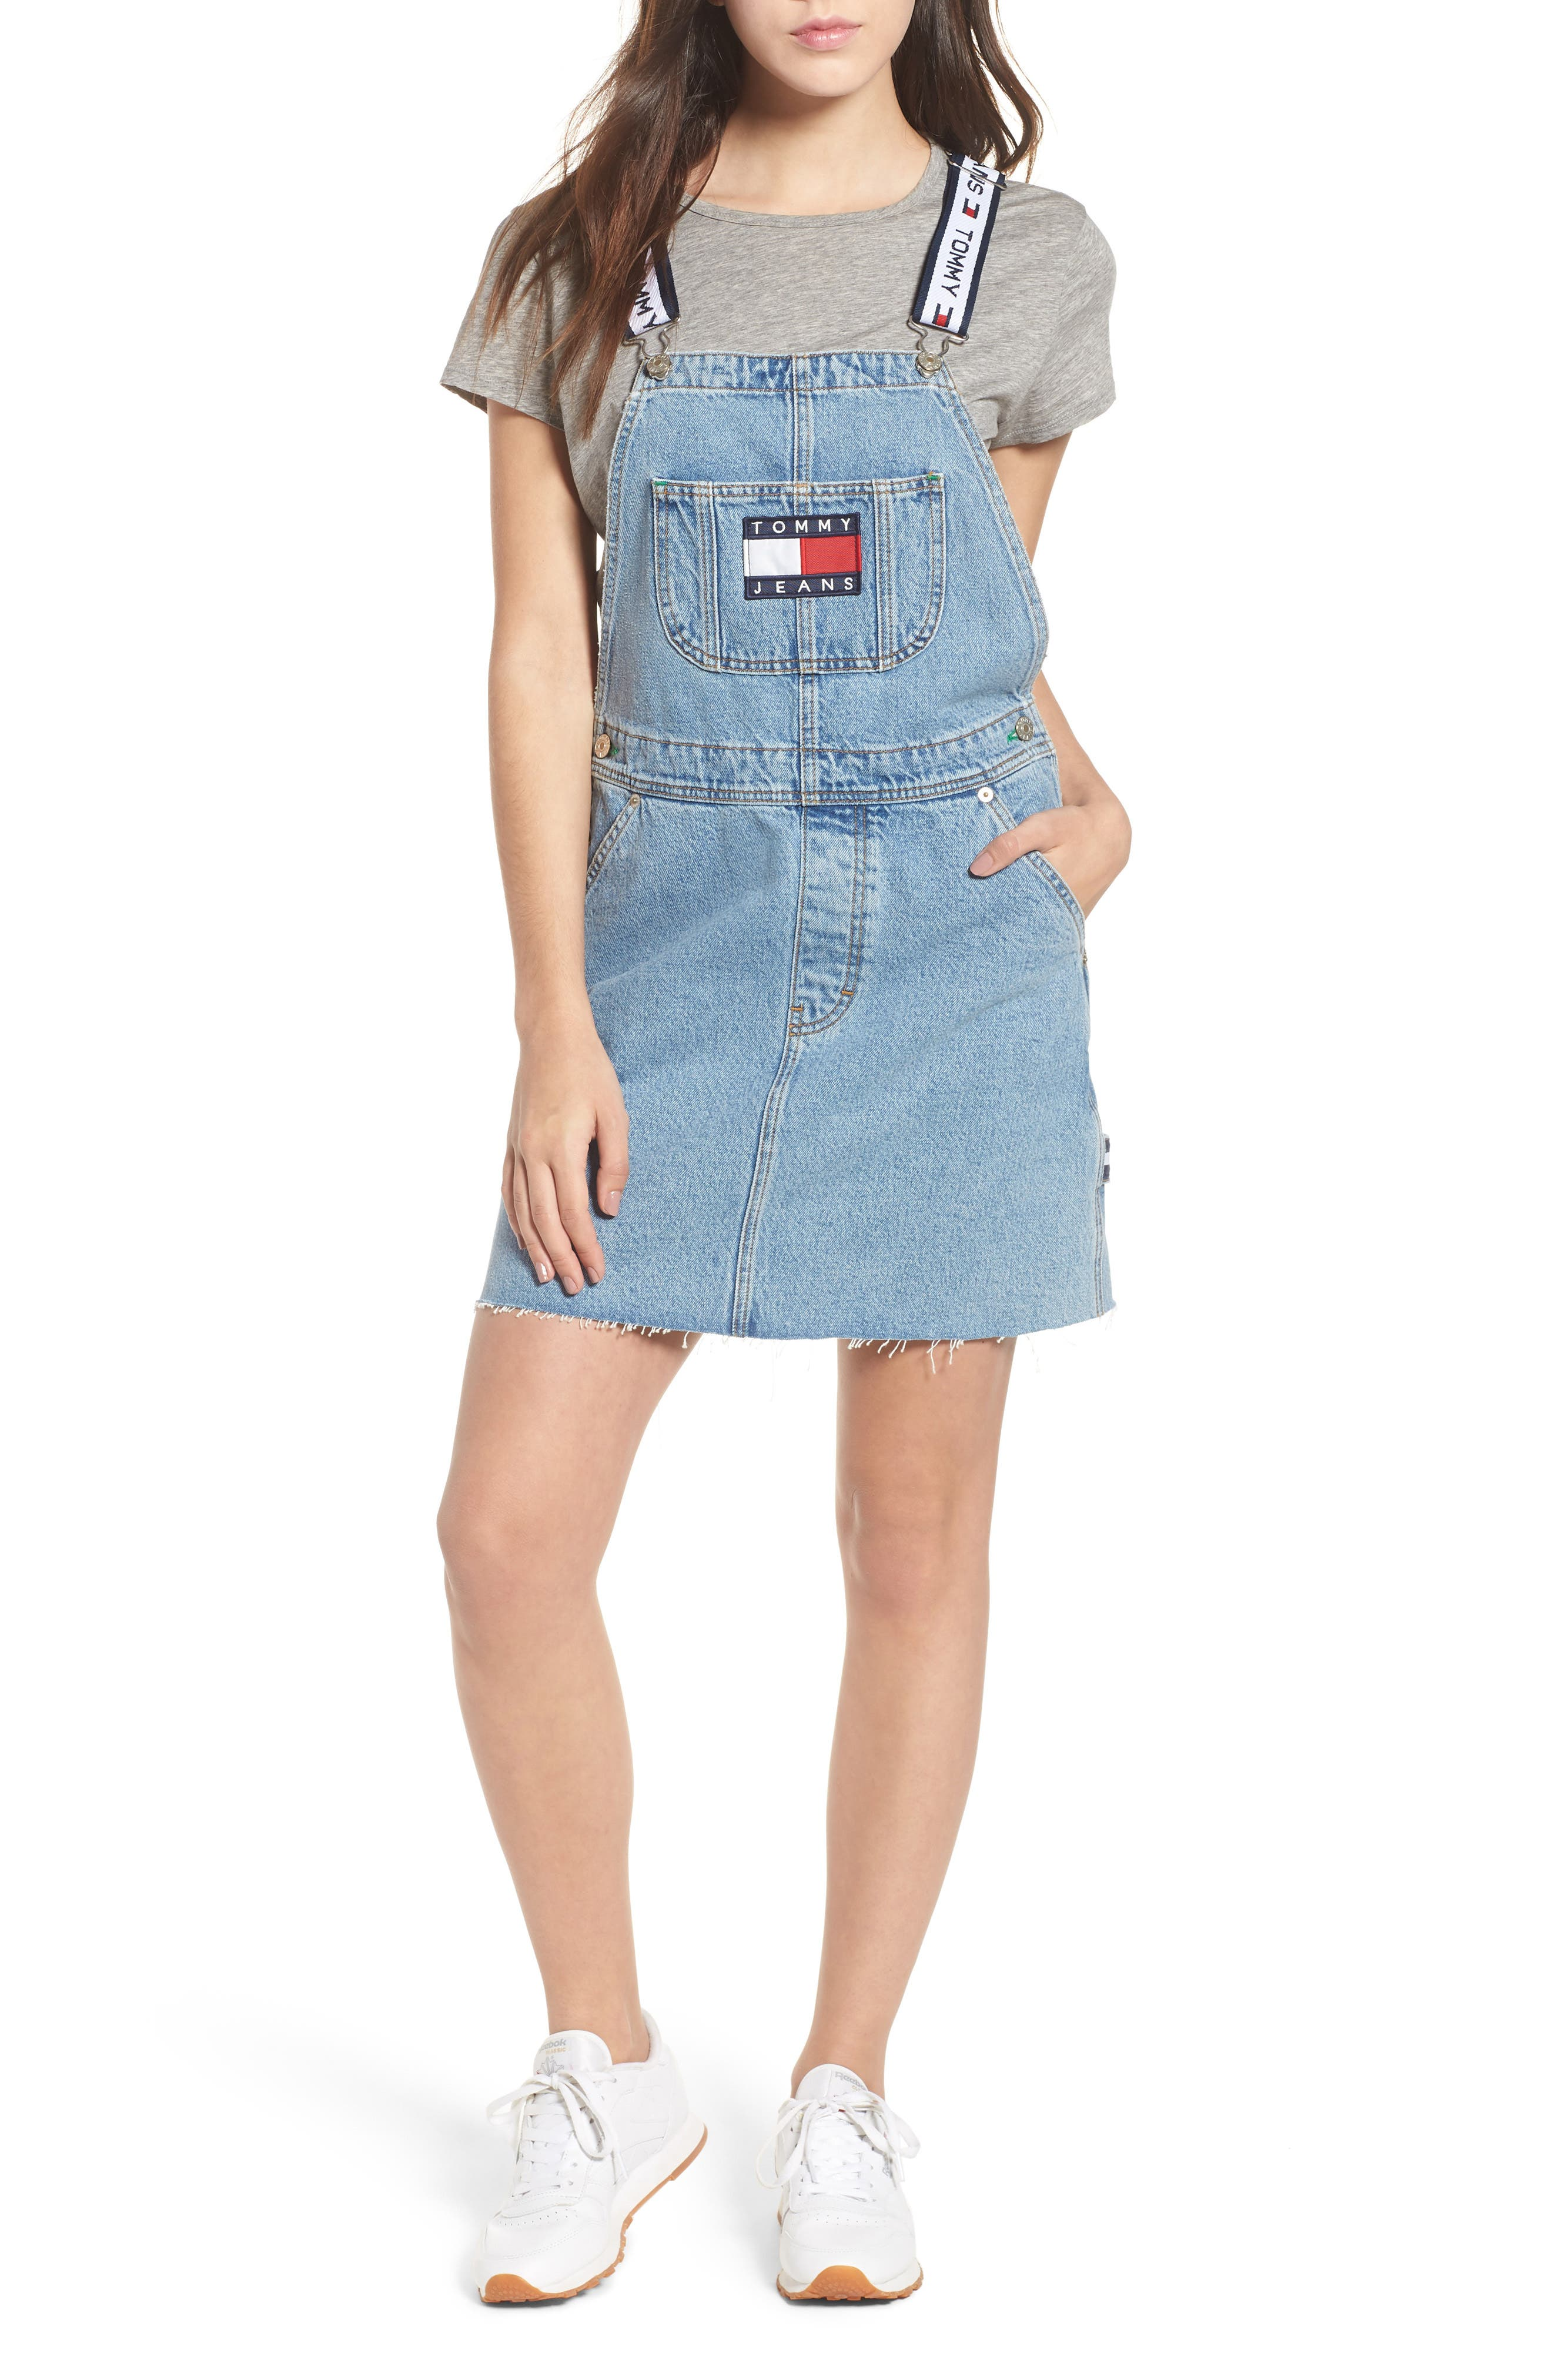 Dunagree Dress,                         Main,                         color, Light Denim Blue